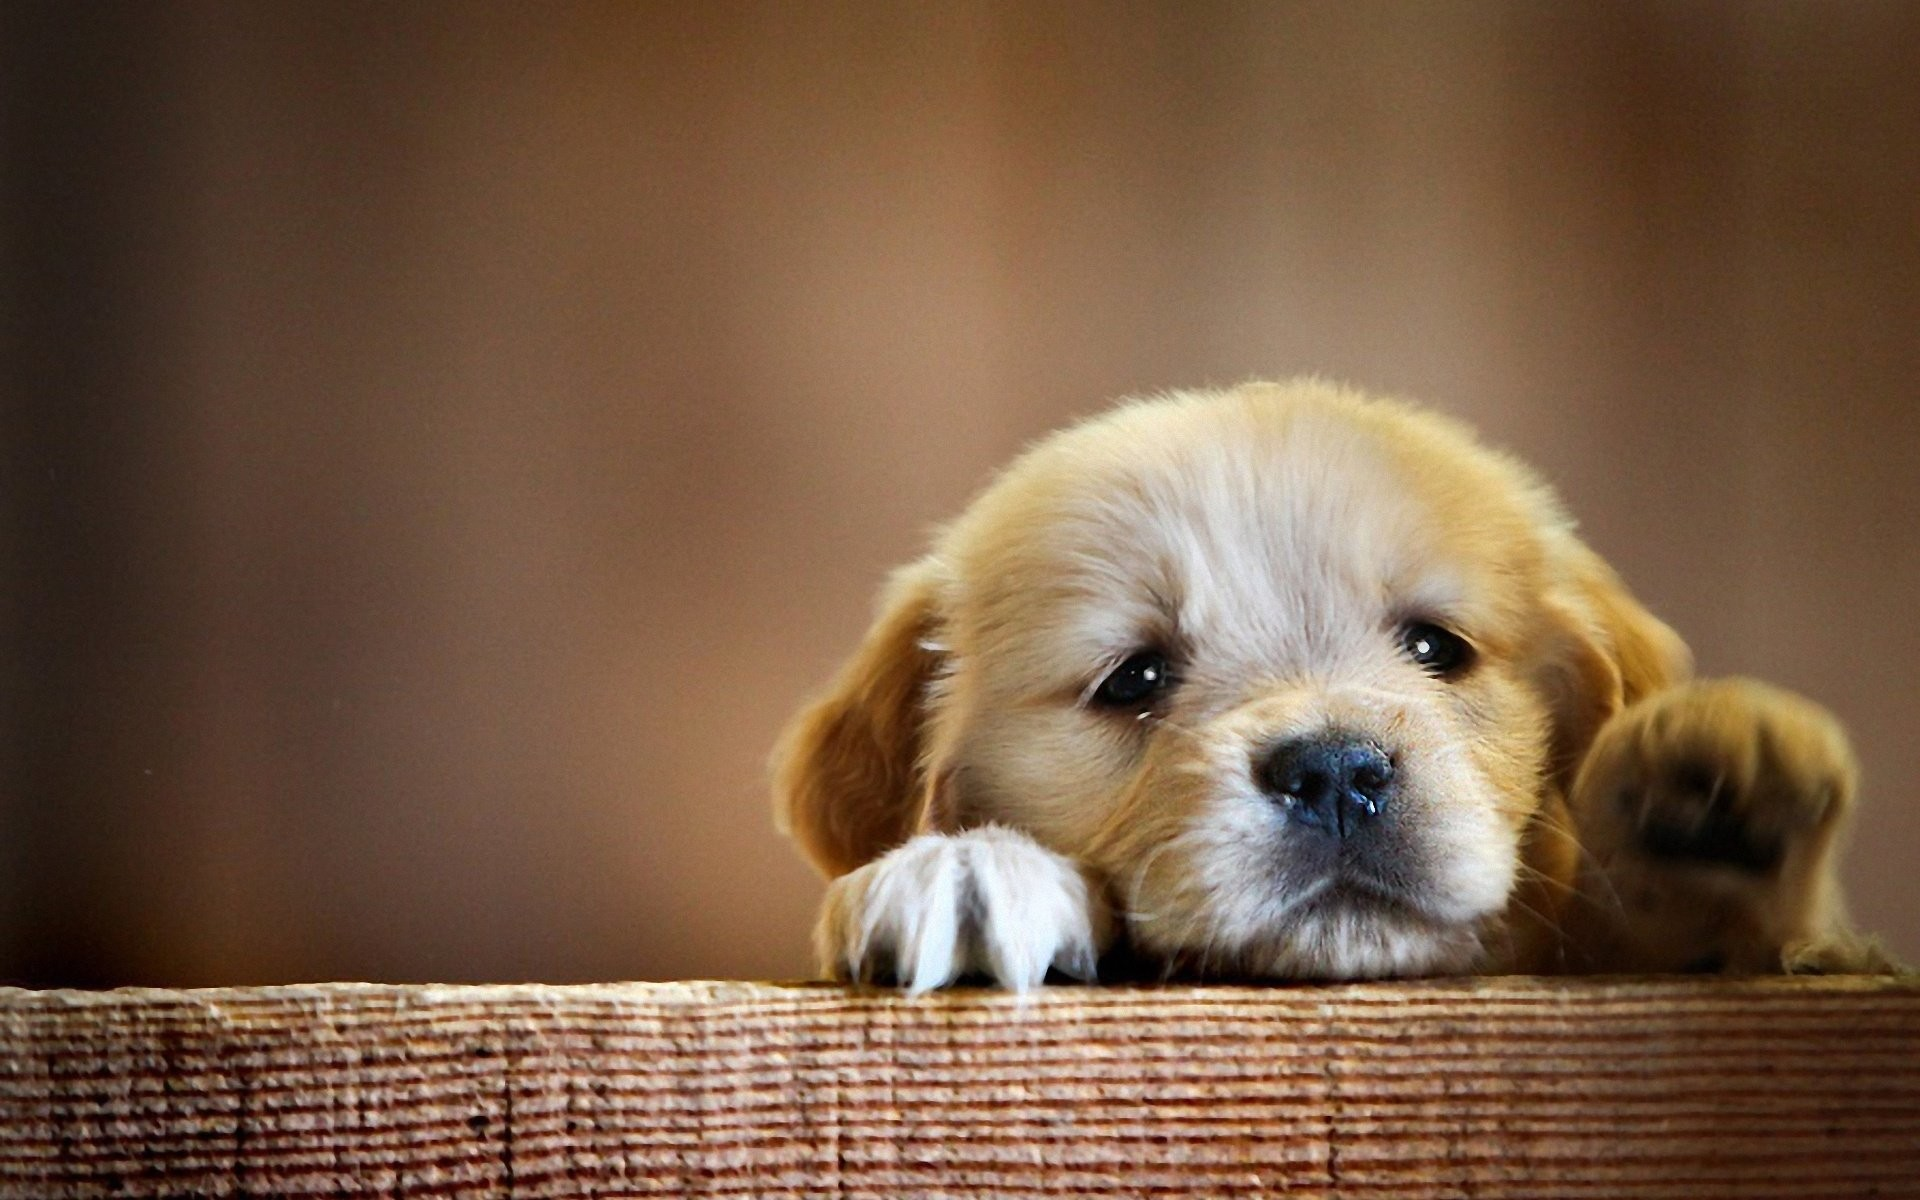 Puppy Wallpaper HD  60  images  1920x1200 HD Wallpaper   Background ID 388815  1920x1200 Animal Puppy